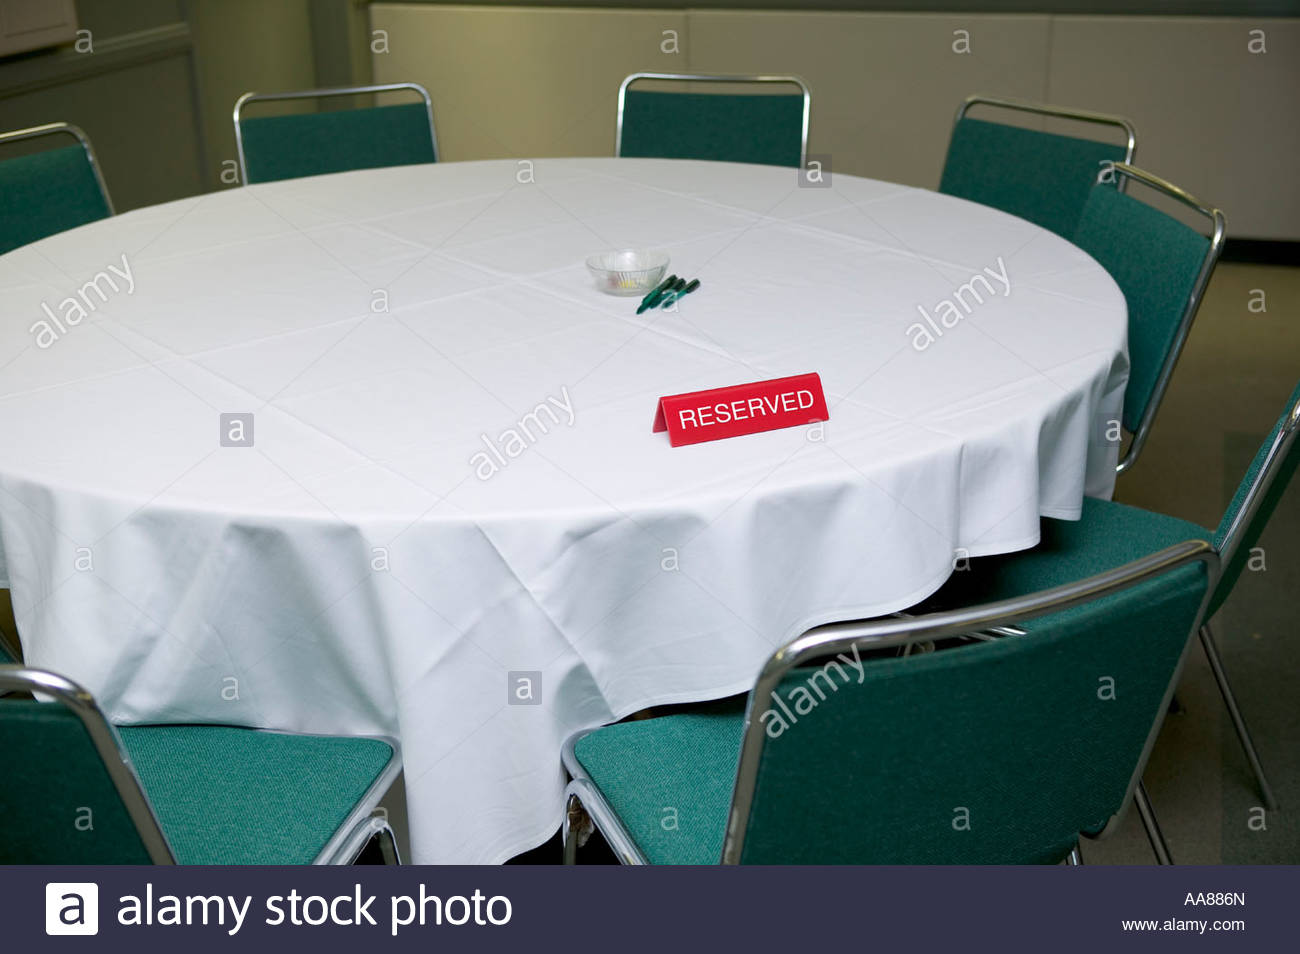 Table with reserved sign - Stock Image